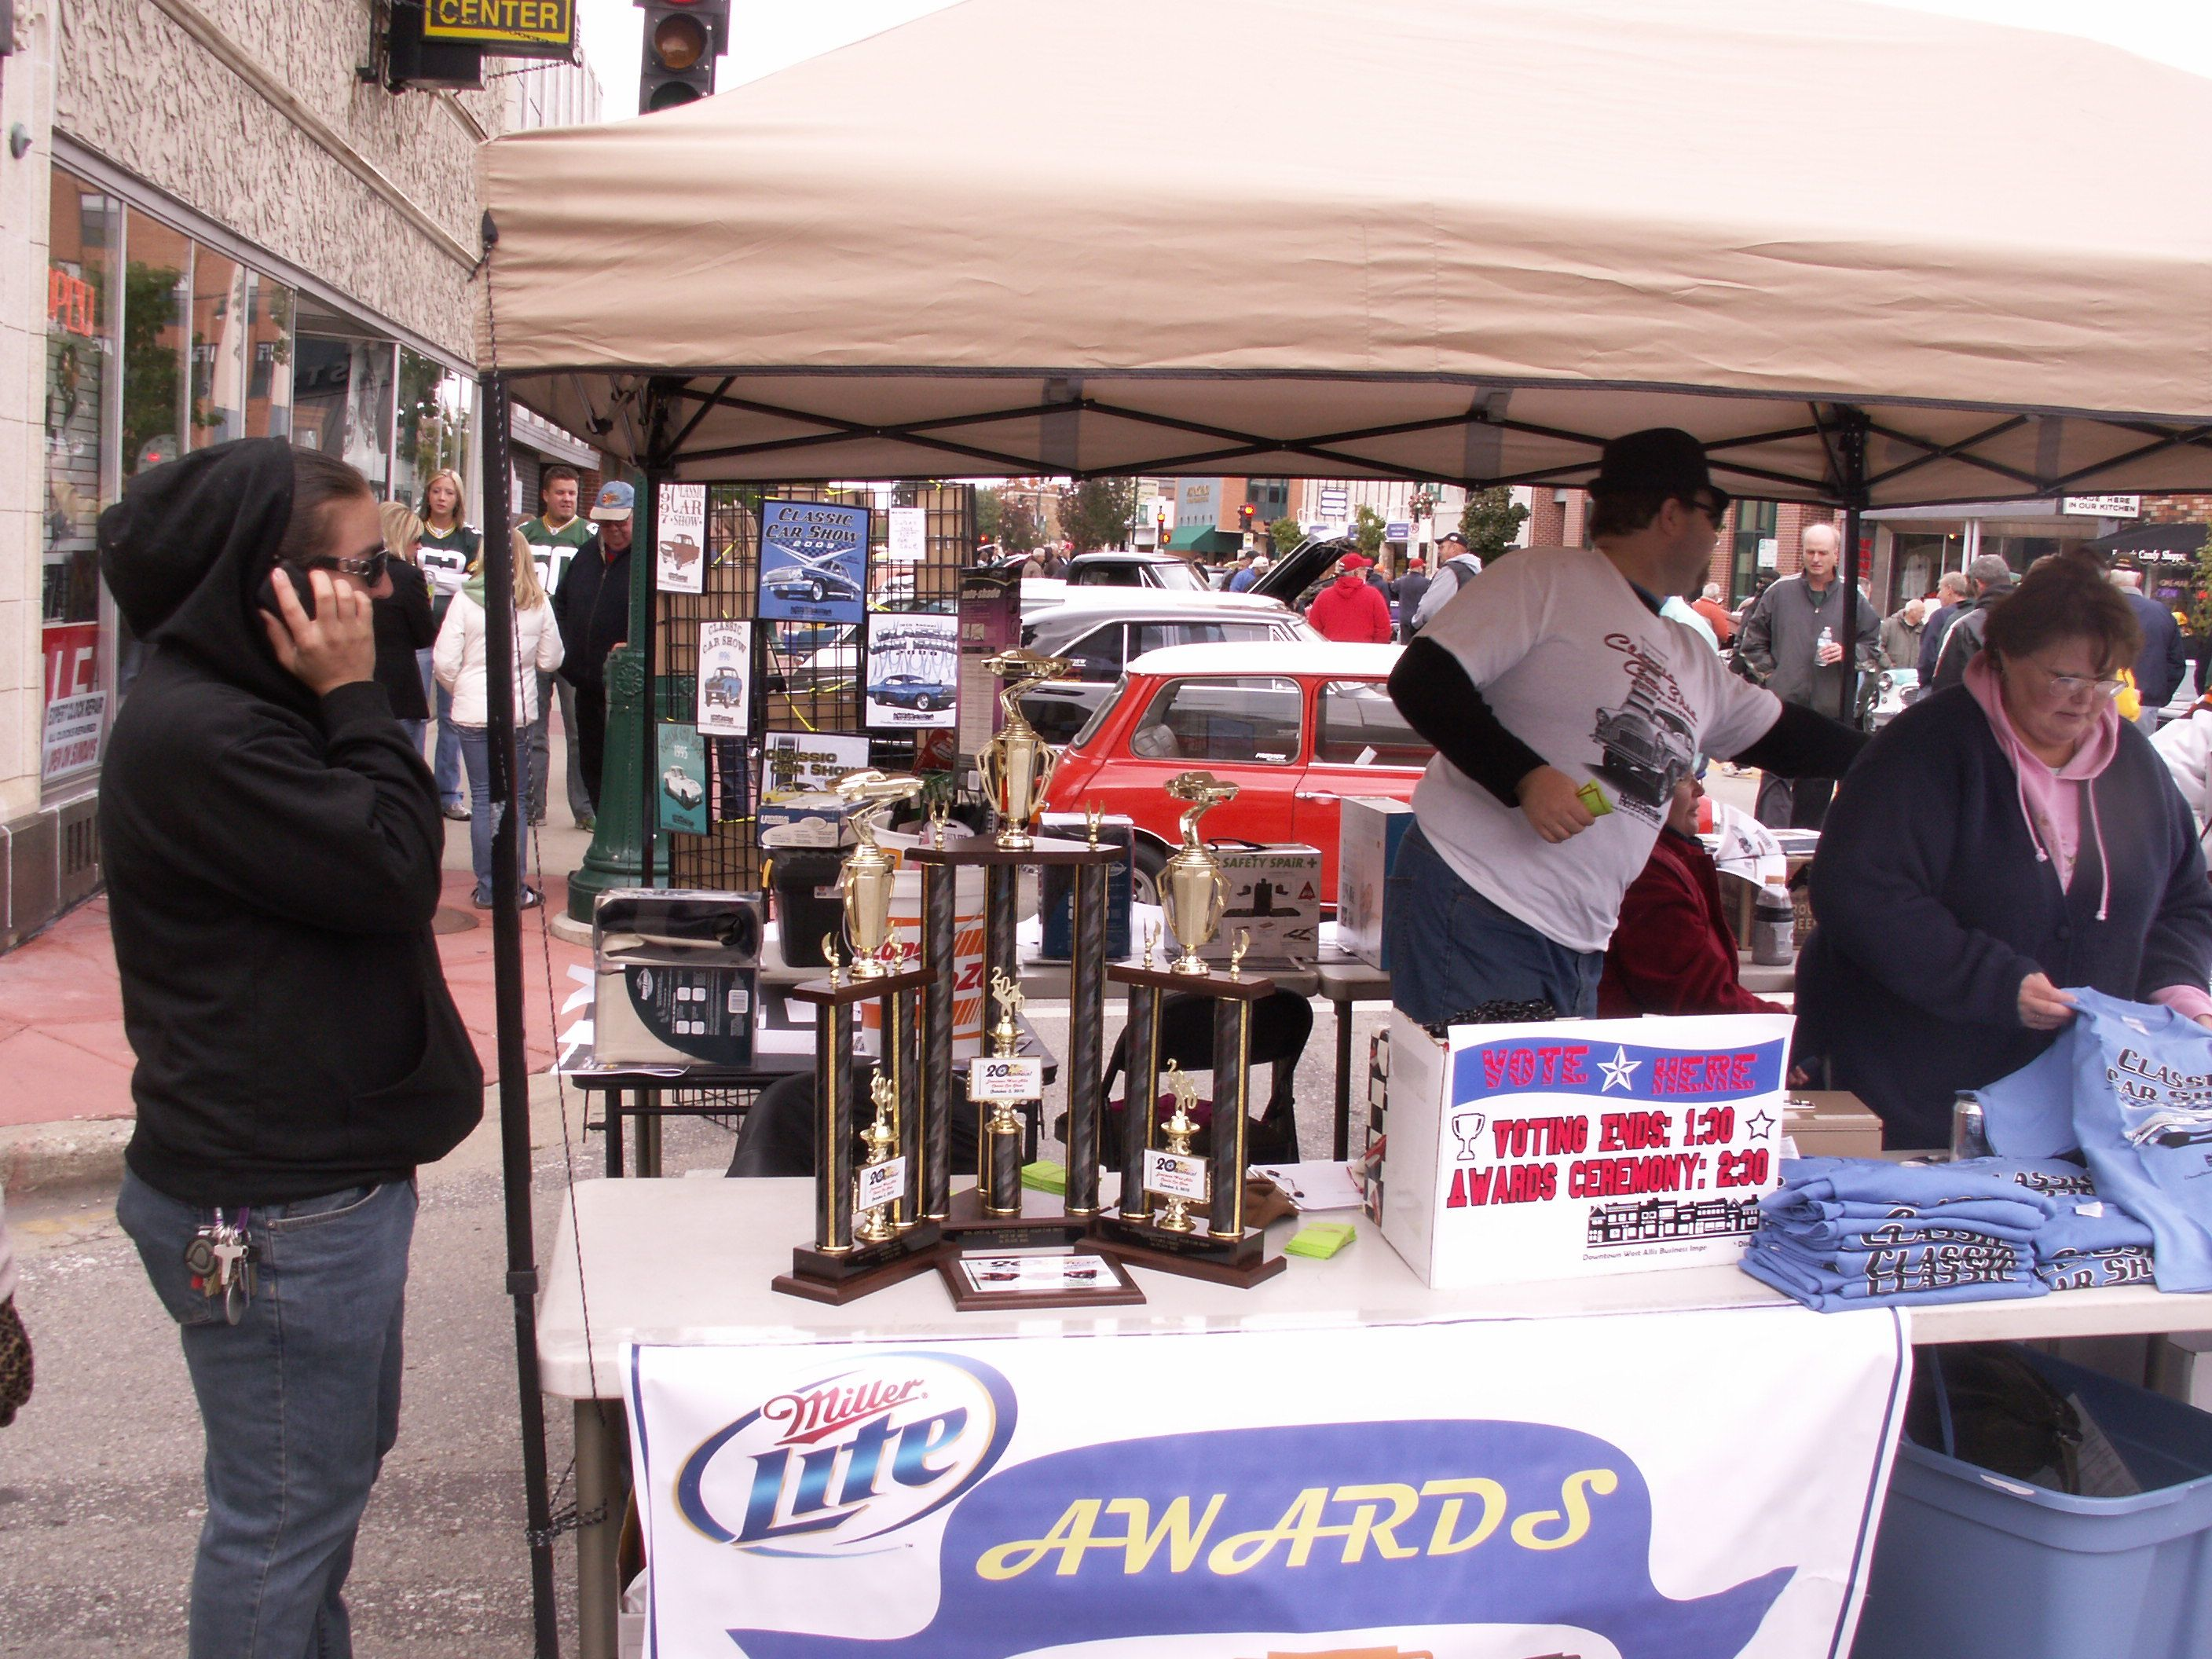 20th Anniversary of the Downtown West Allis Classic Car Show  October 2010  #WestAllis #Wisconsin